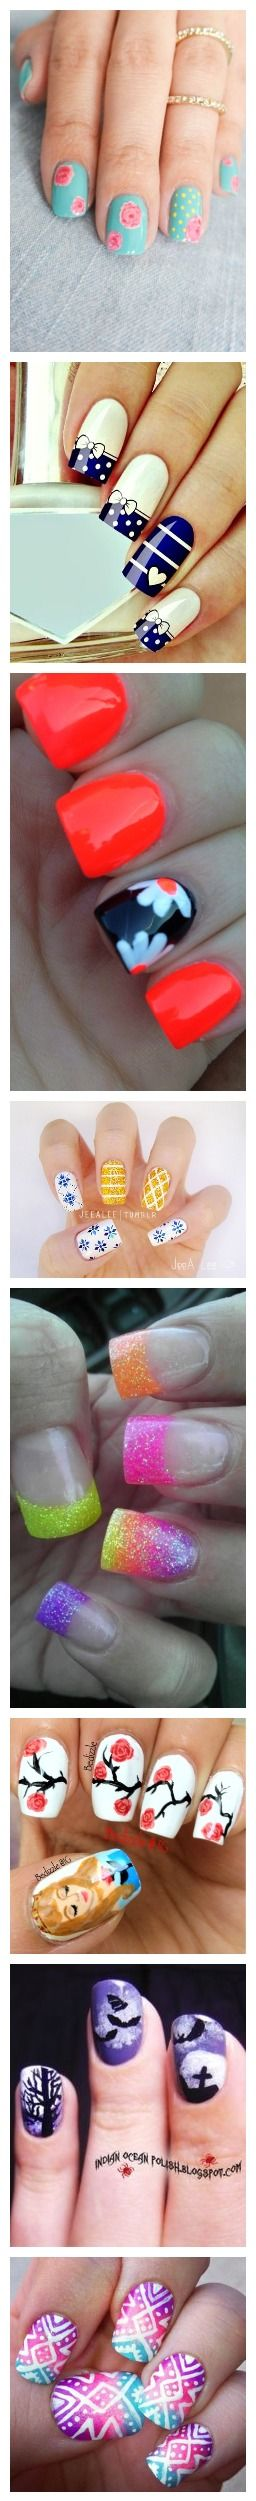 Enjoying The Beauty Of Nail Art